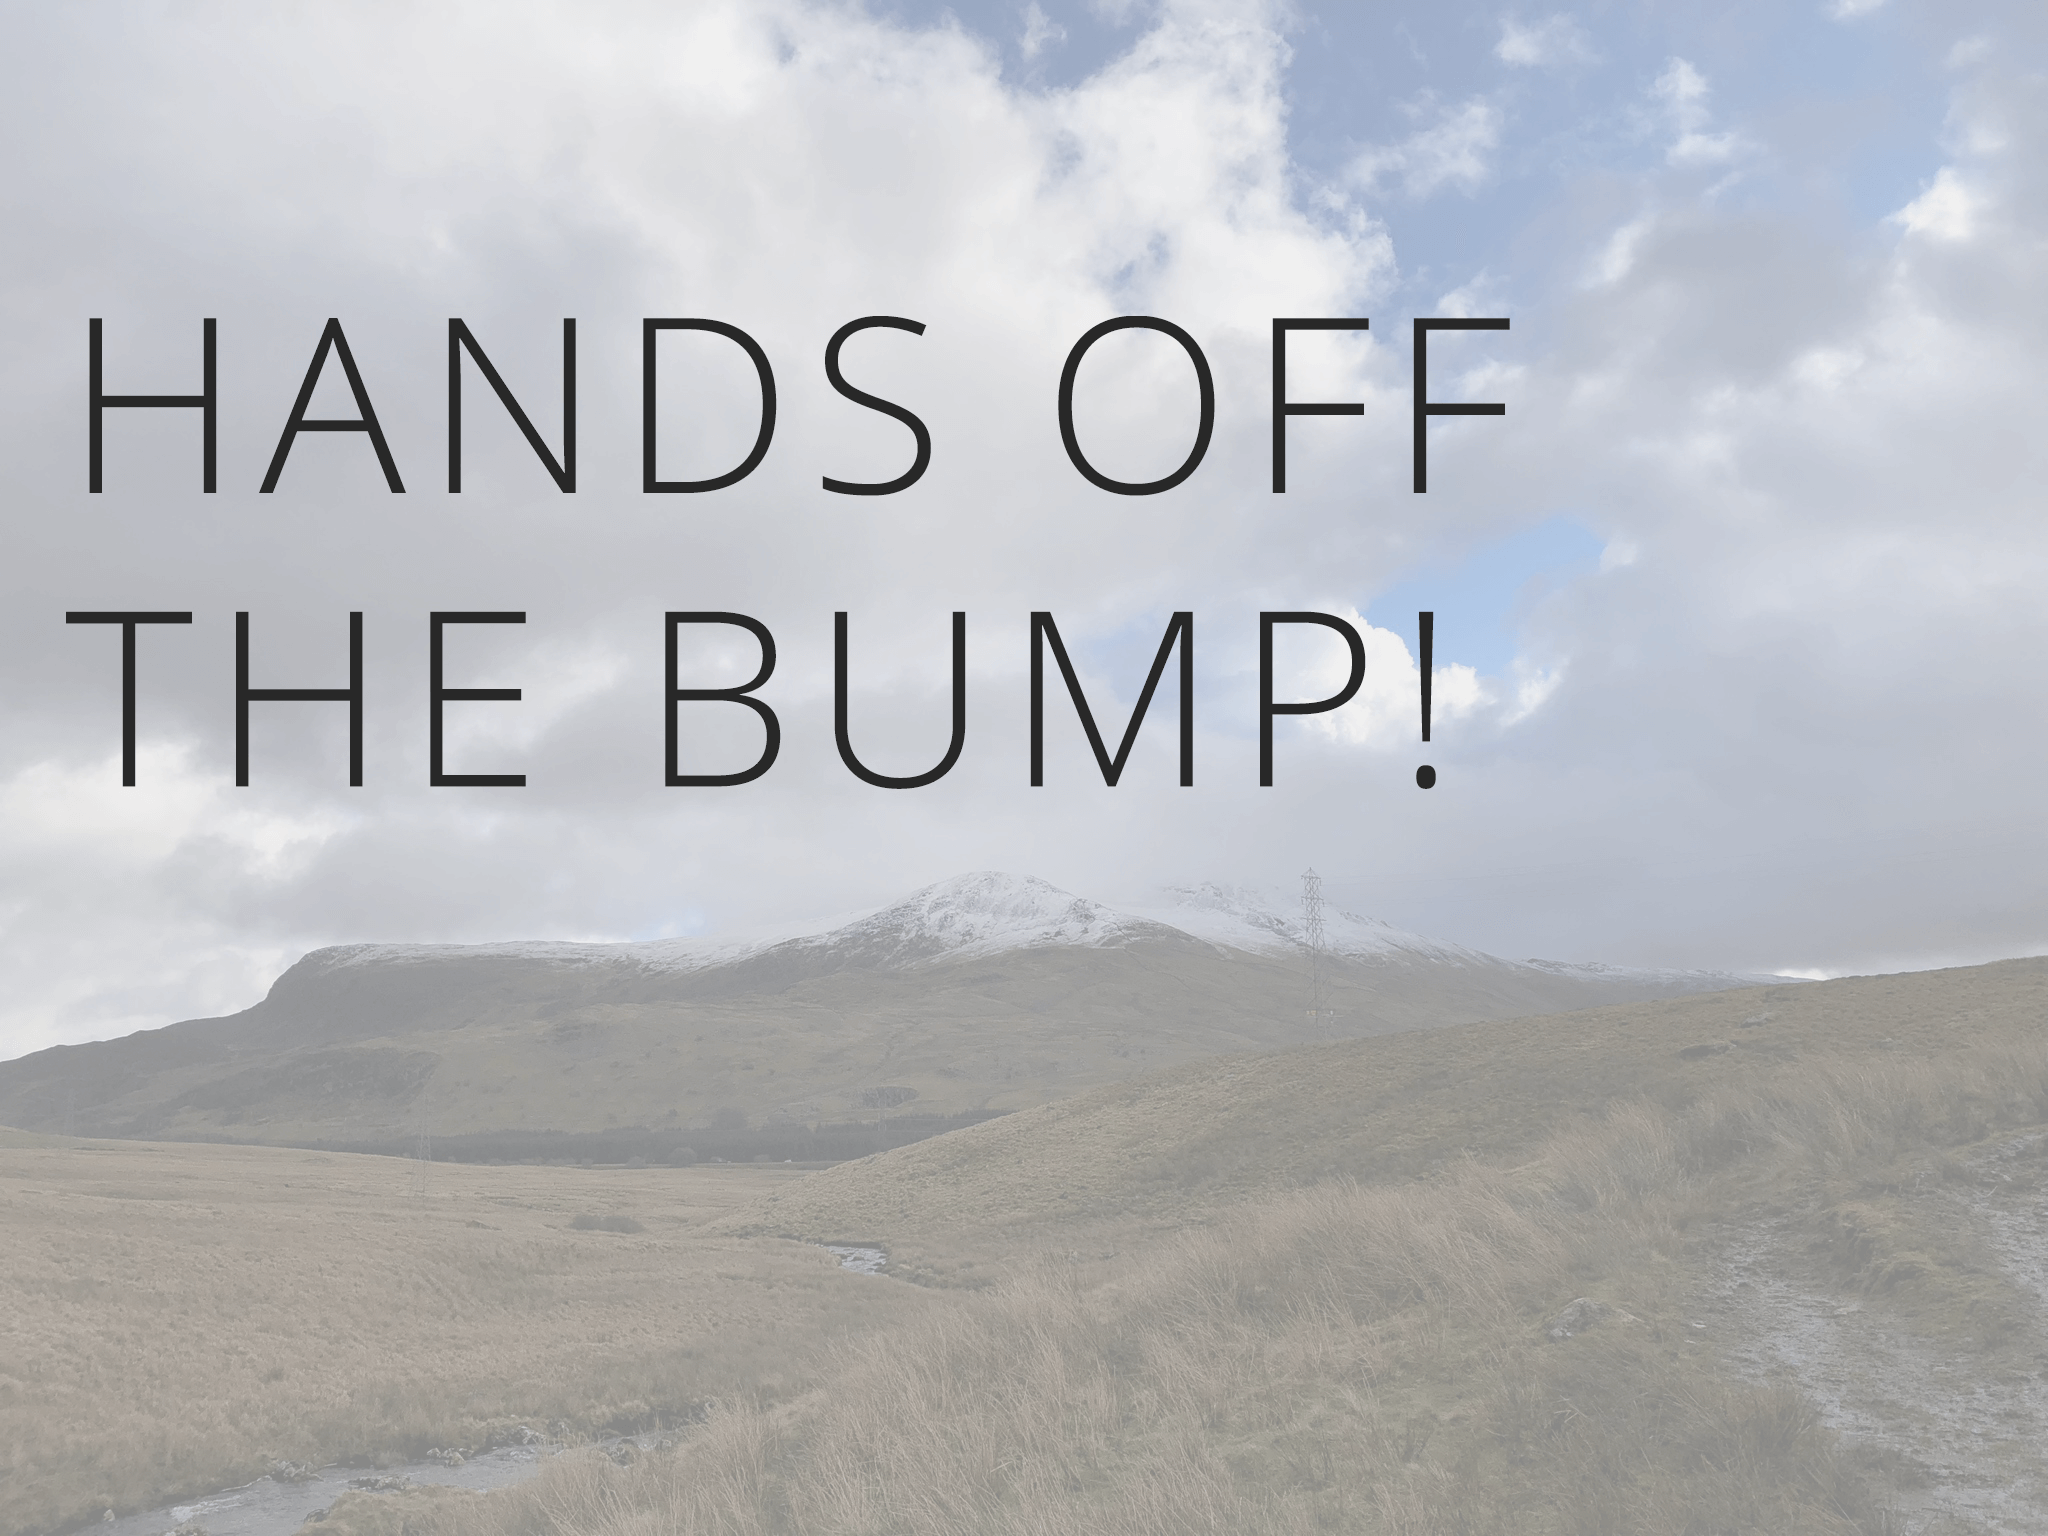 Hands off the bump!